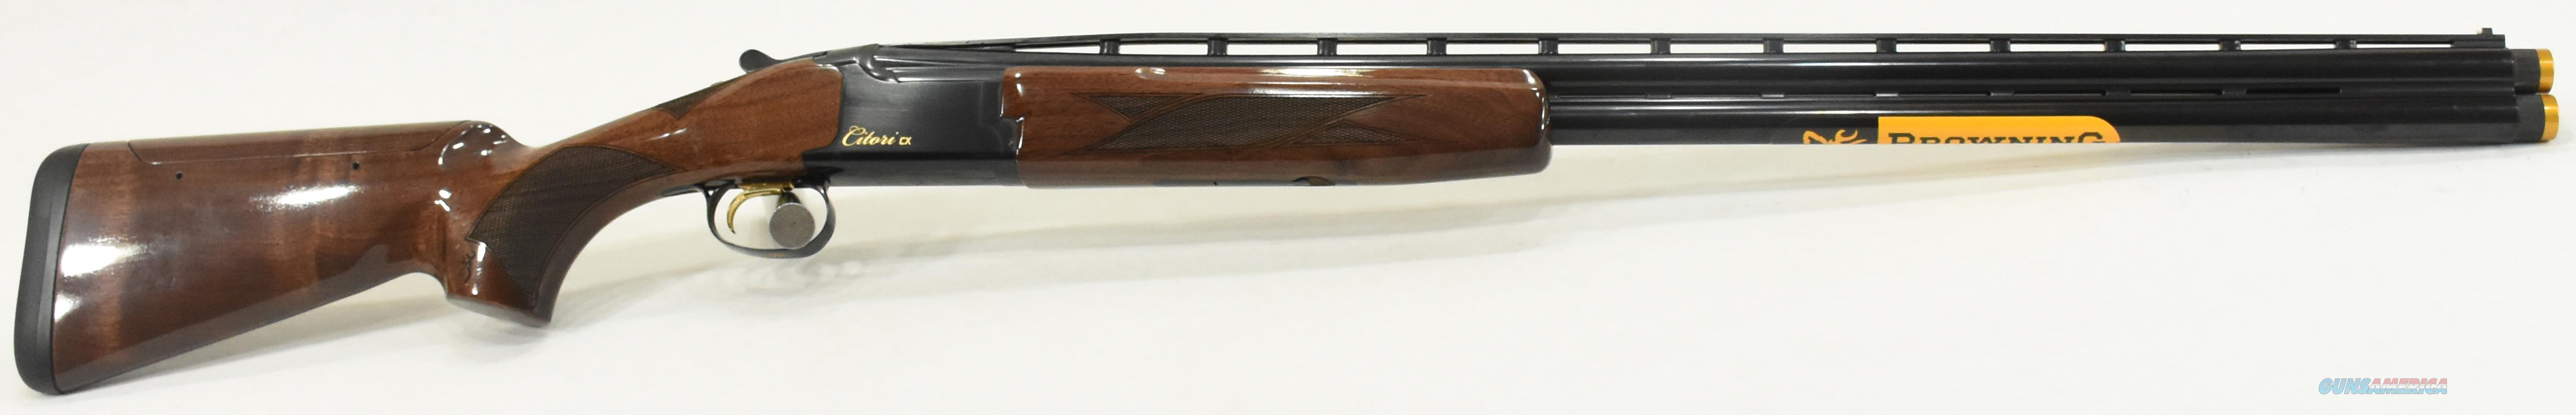 Citori CX Adj 12Ga 30-3In  018111303  Guns > Shotguns > Browning Shotguns > Over Unders > Citori > Hunting